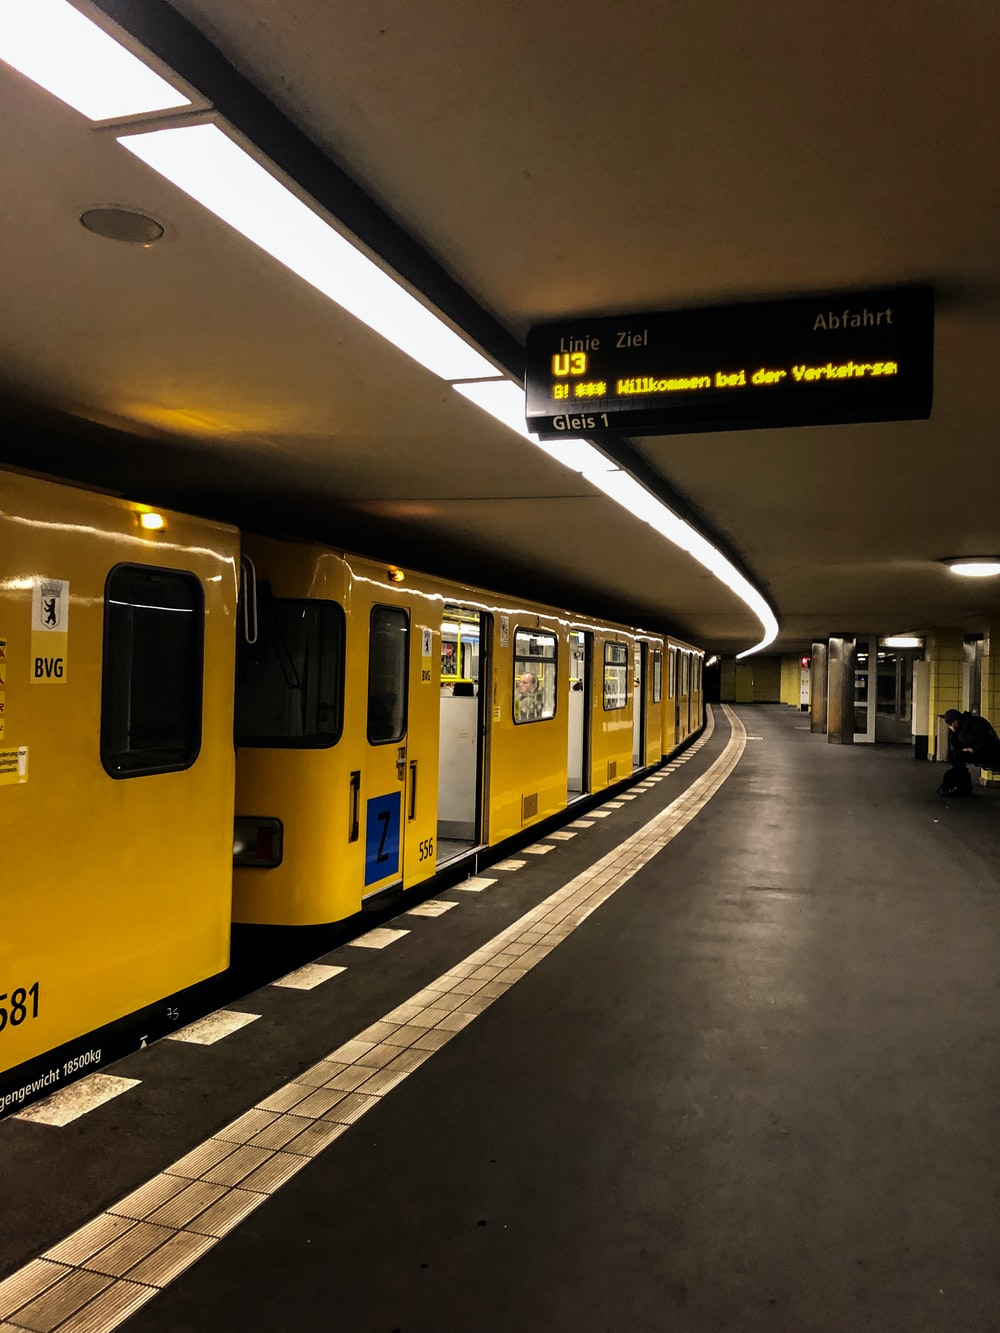 yellow train in the station